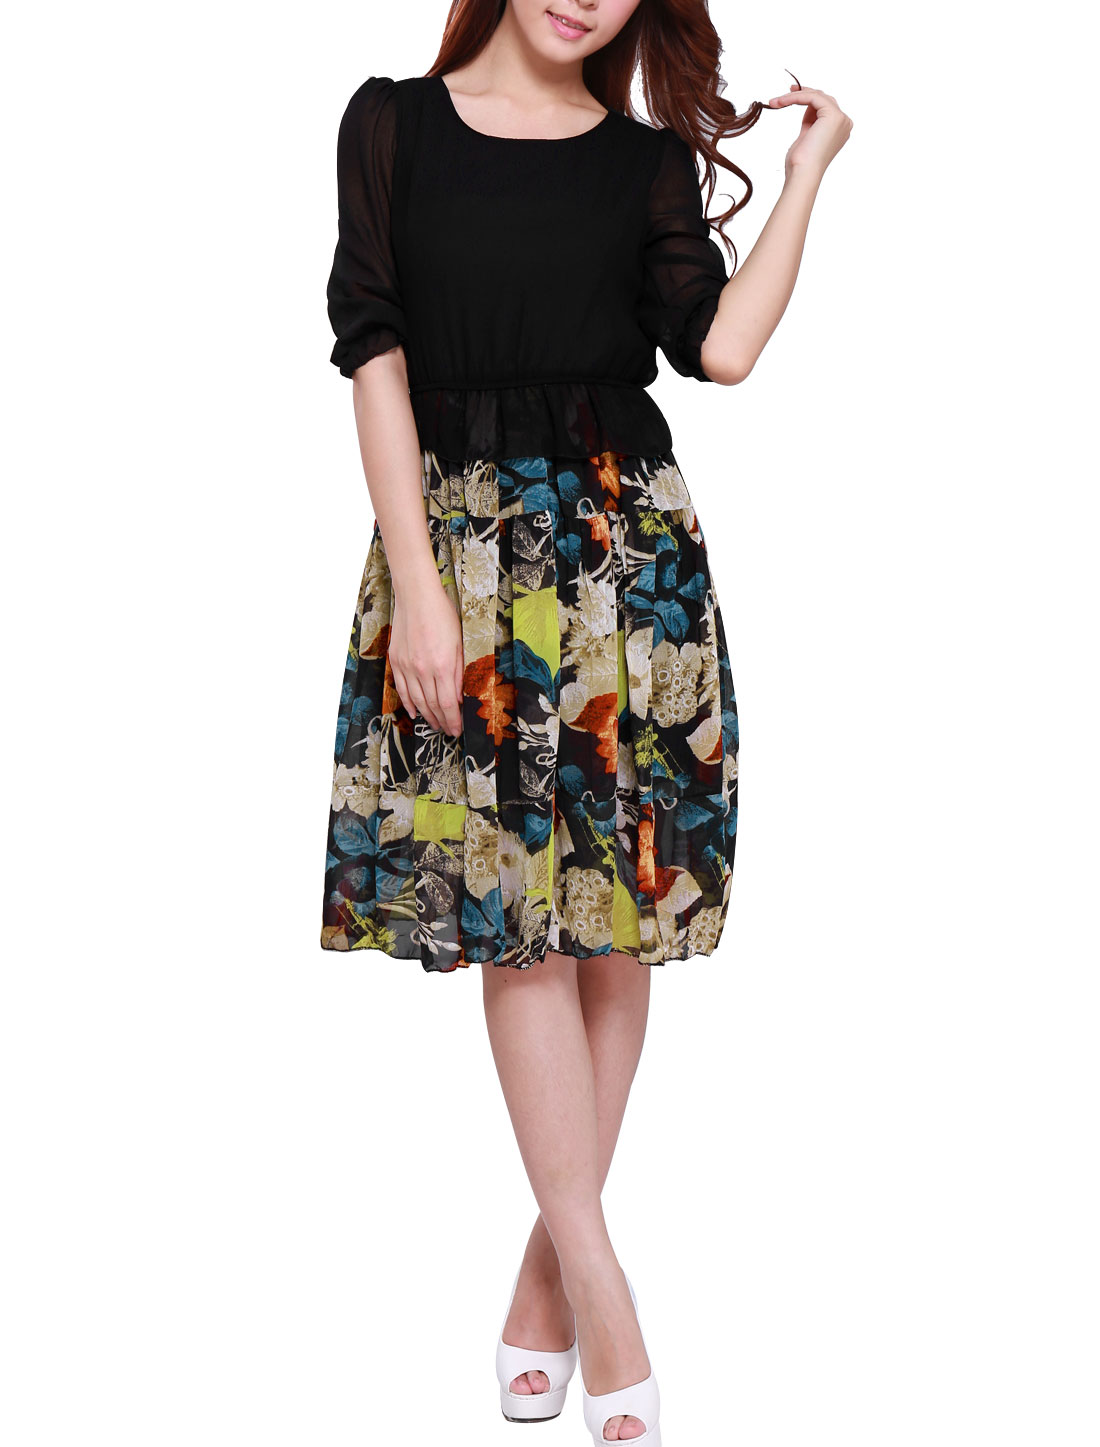 Lady NEW Round Neck Layered Design Floral Prints Dress Black XS